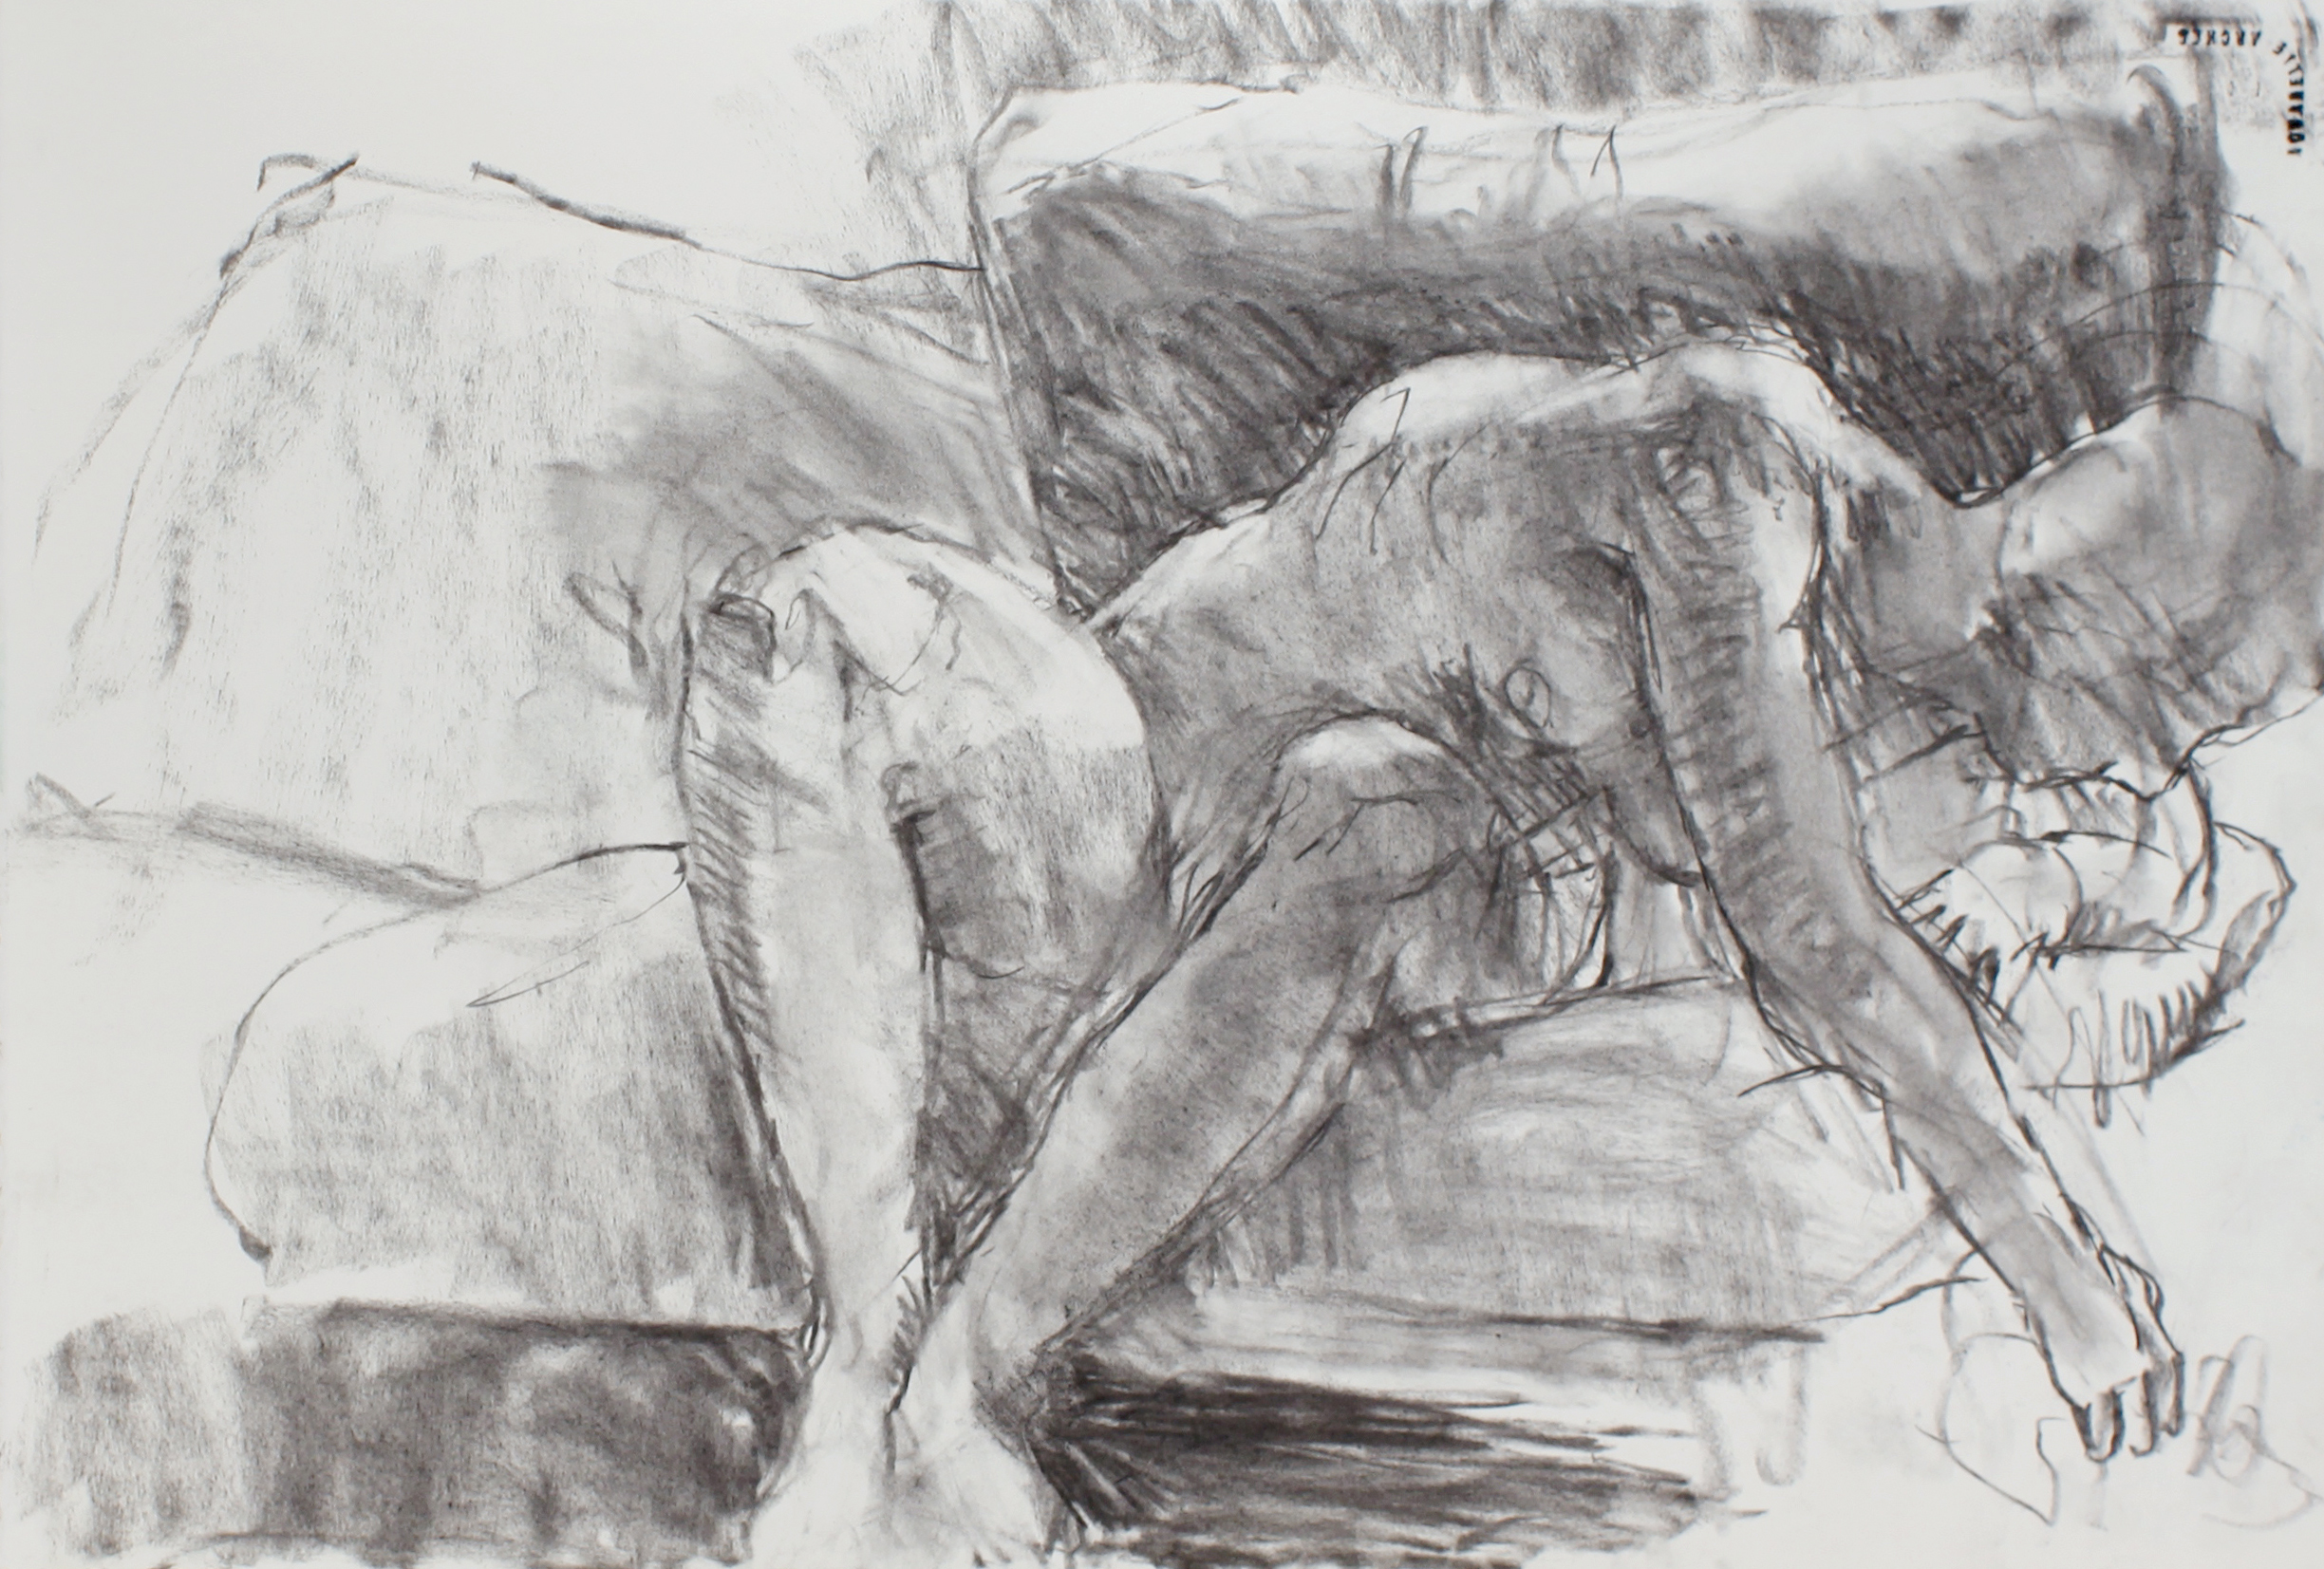 1990s_Seated_male_Nude_Leaning_on_Sofa_charcoal_on_paper_15x22in_WPF474.jpg